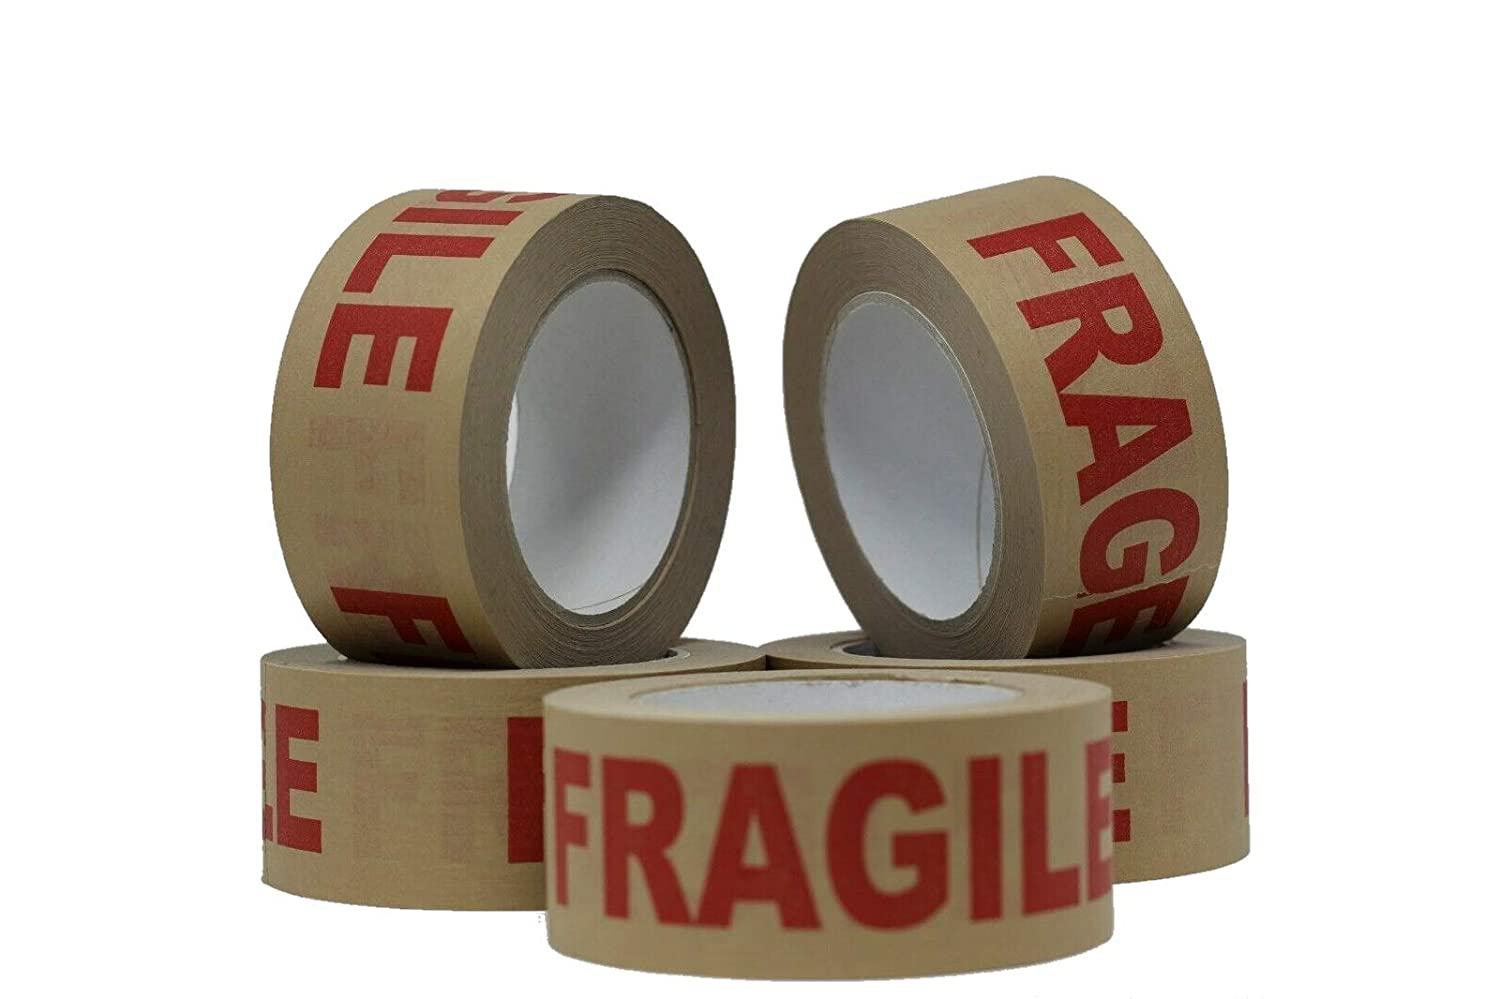 6 BIG ROLLS STRONG FRAGILE PRINTED PACKING PARCEL TAPE 48mm x 66m LOW NOISE